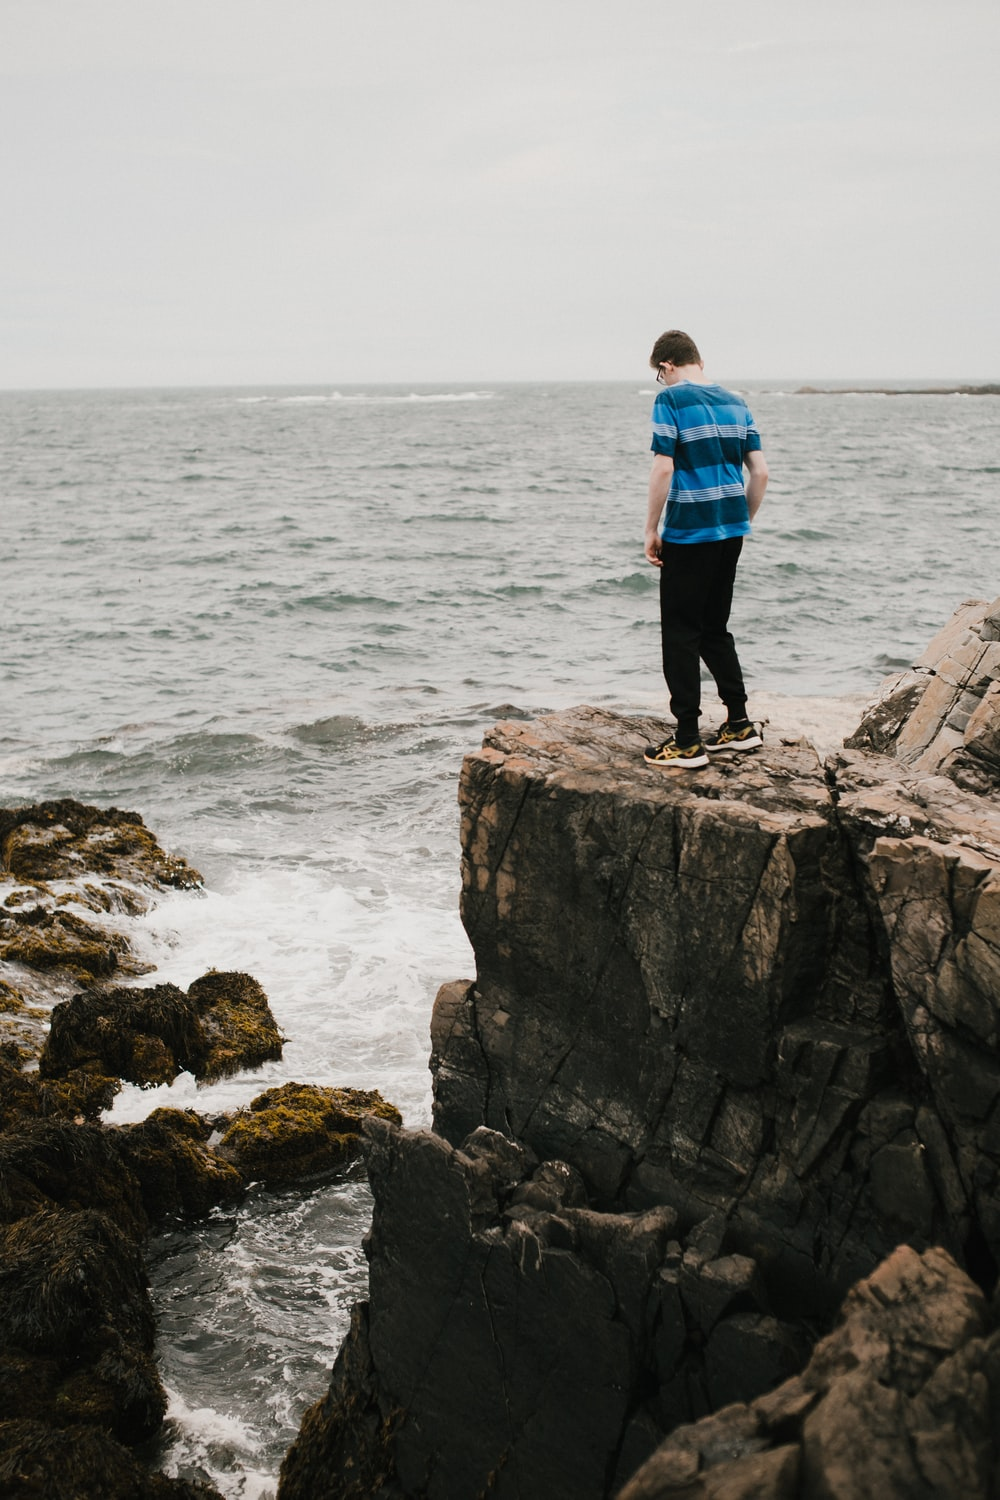 man in blue and black plaid dress shirt standing on rock formation near sea during daytime